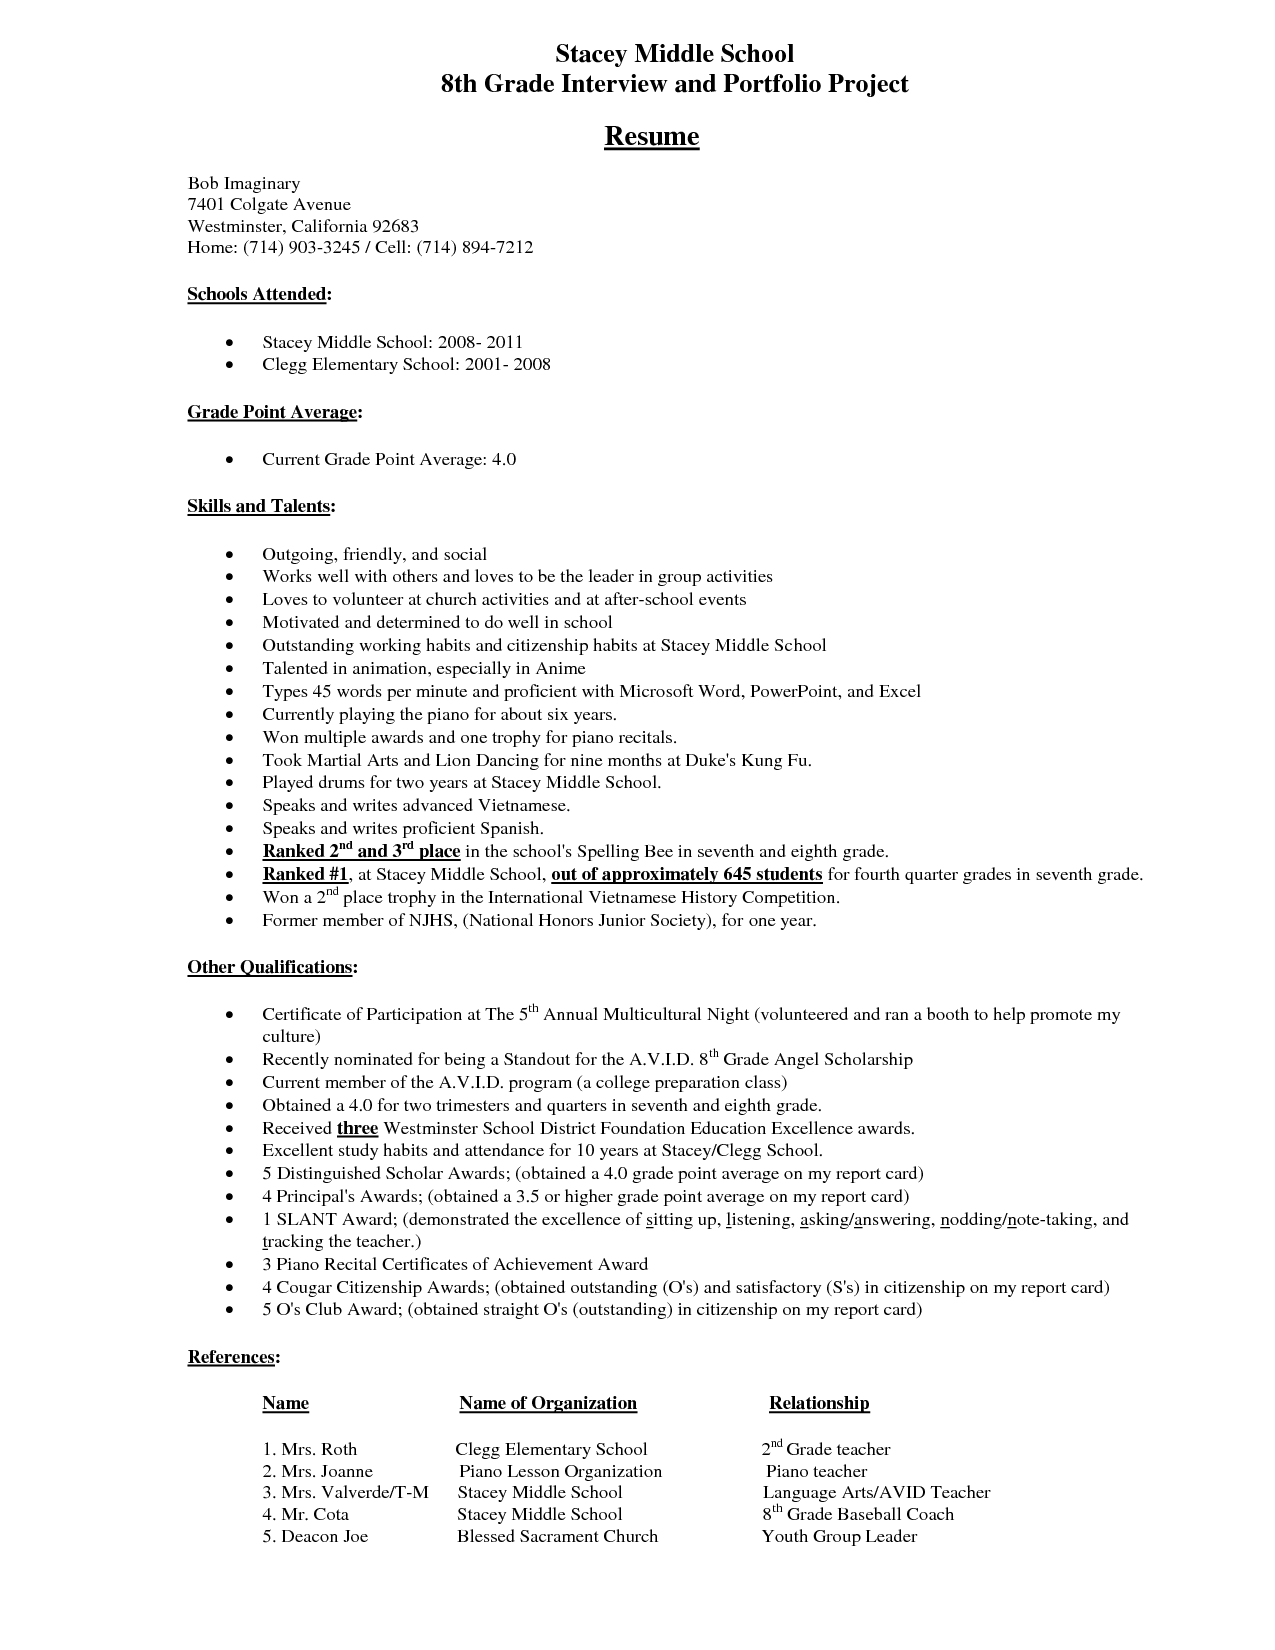 Portfolio Resume Examples Middle School Student Resume Example Stacey Middle